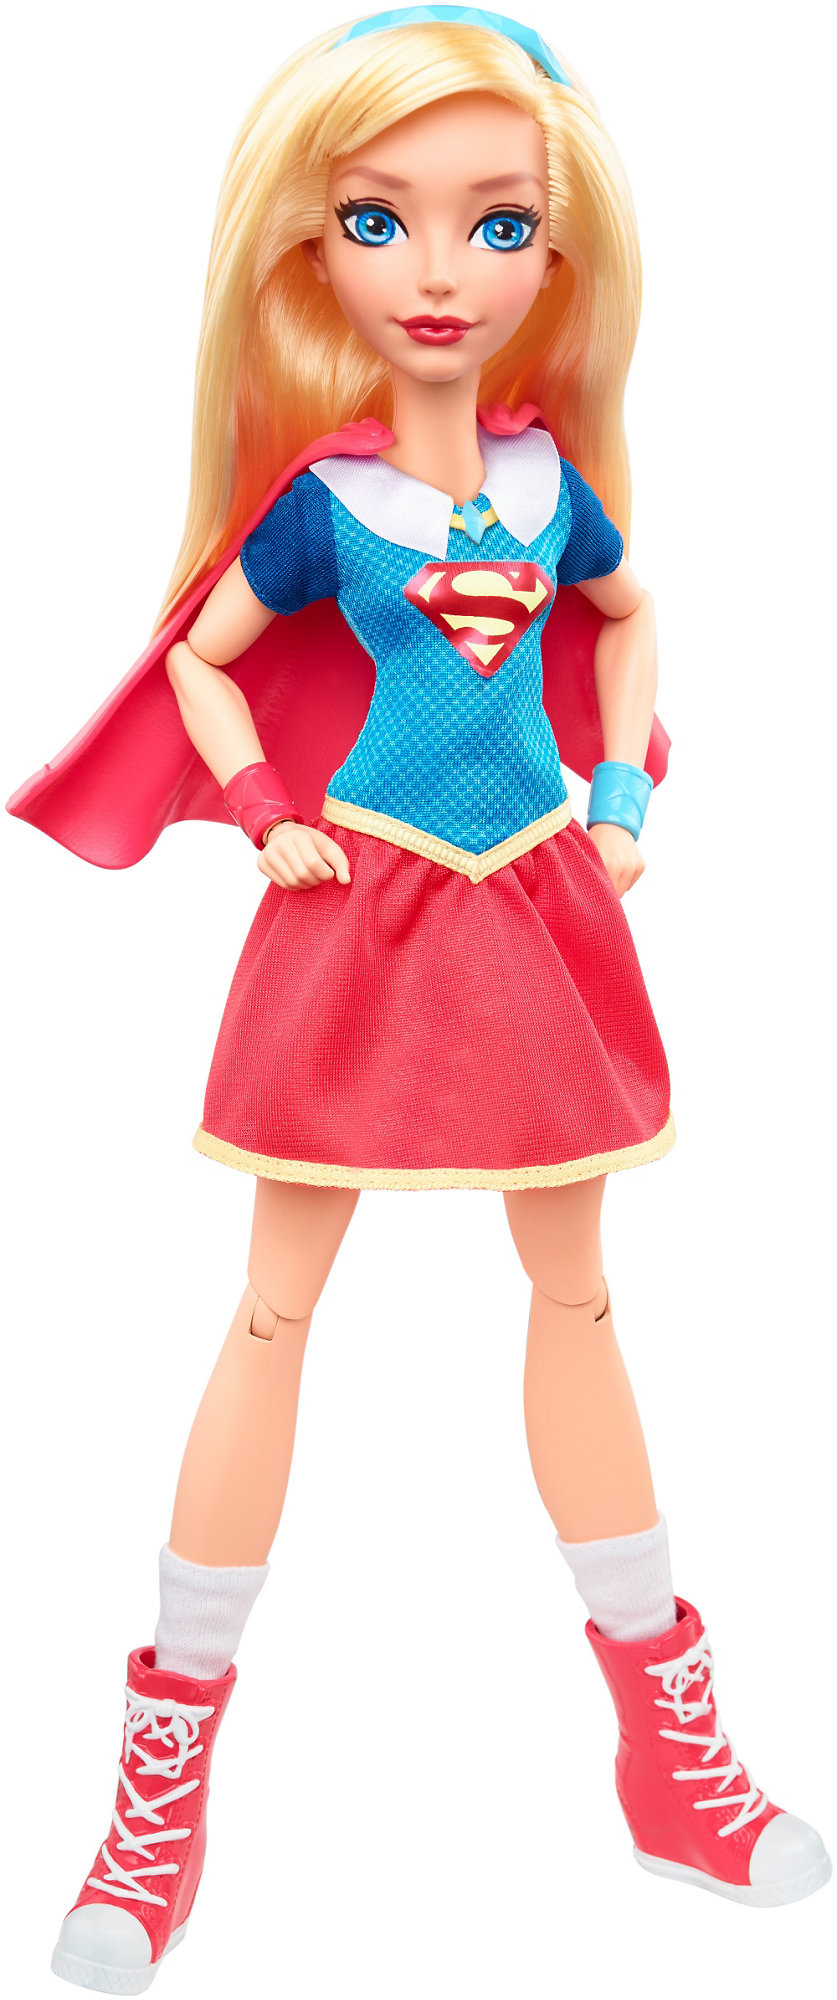 "DC Super Hero Girls Supergirl 12"" Action Doll by Mattel"